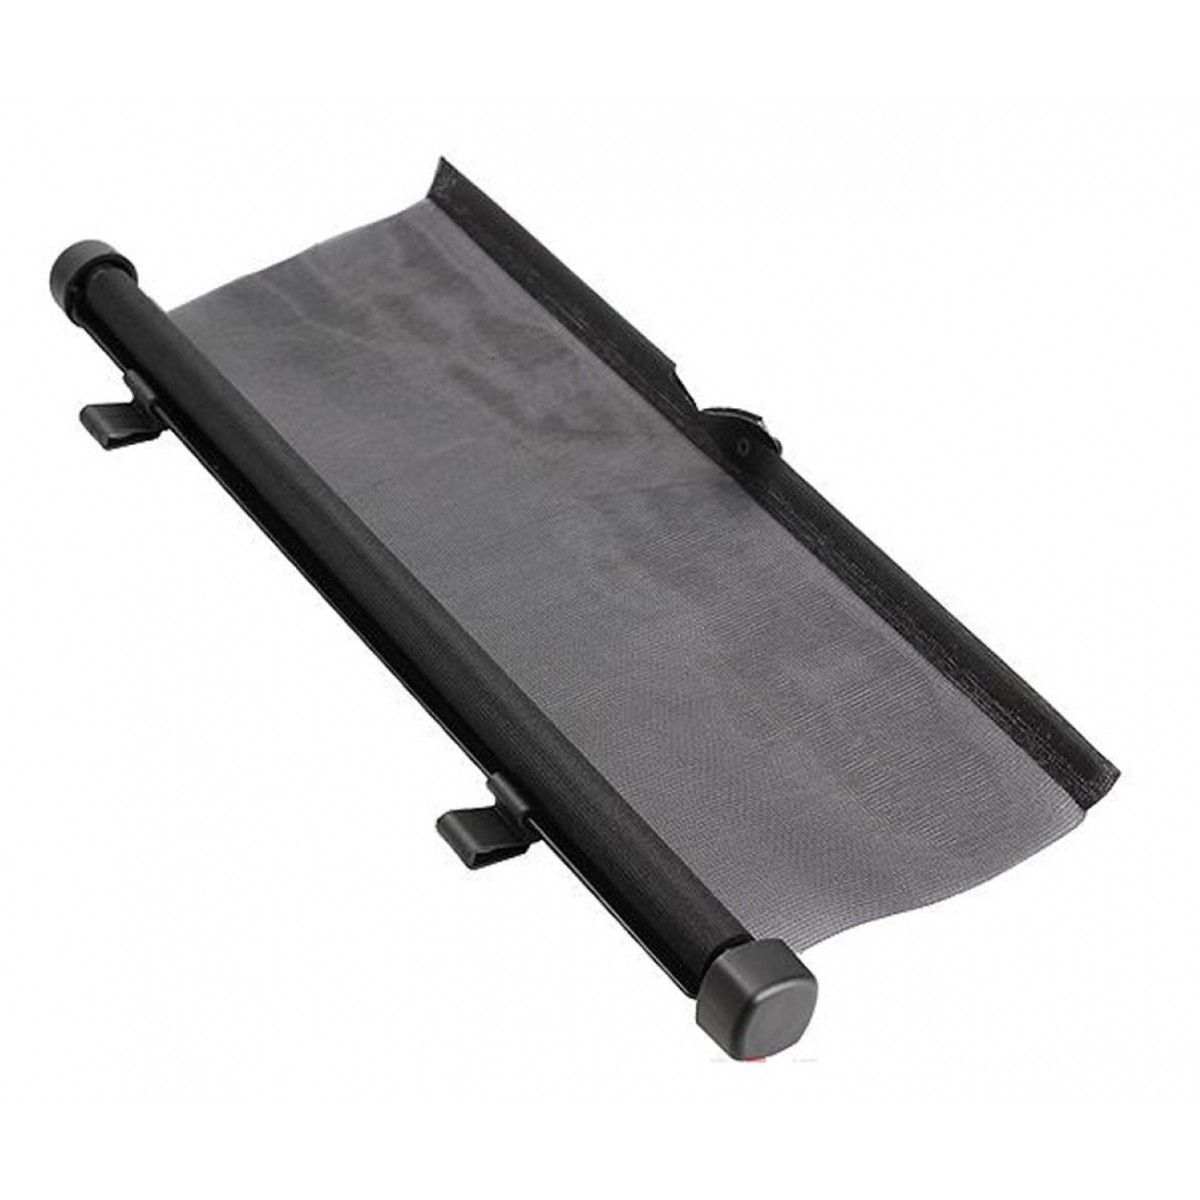 Cortina para Janela de Carro Parasol Retratil automotivo (BSL-45765-3)